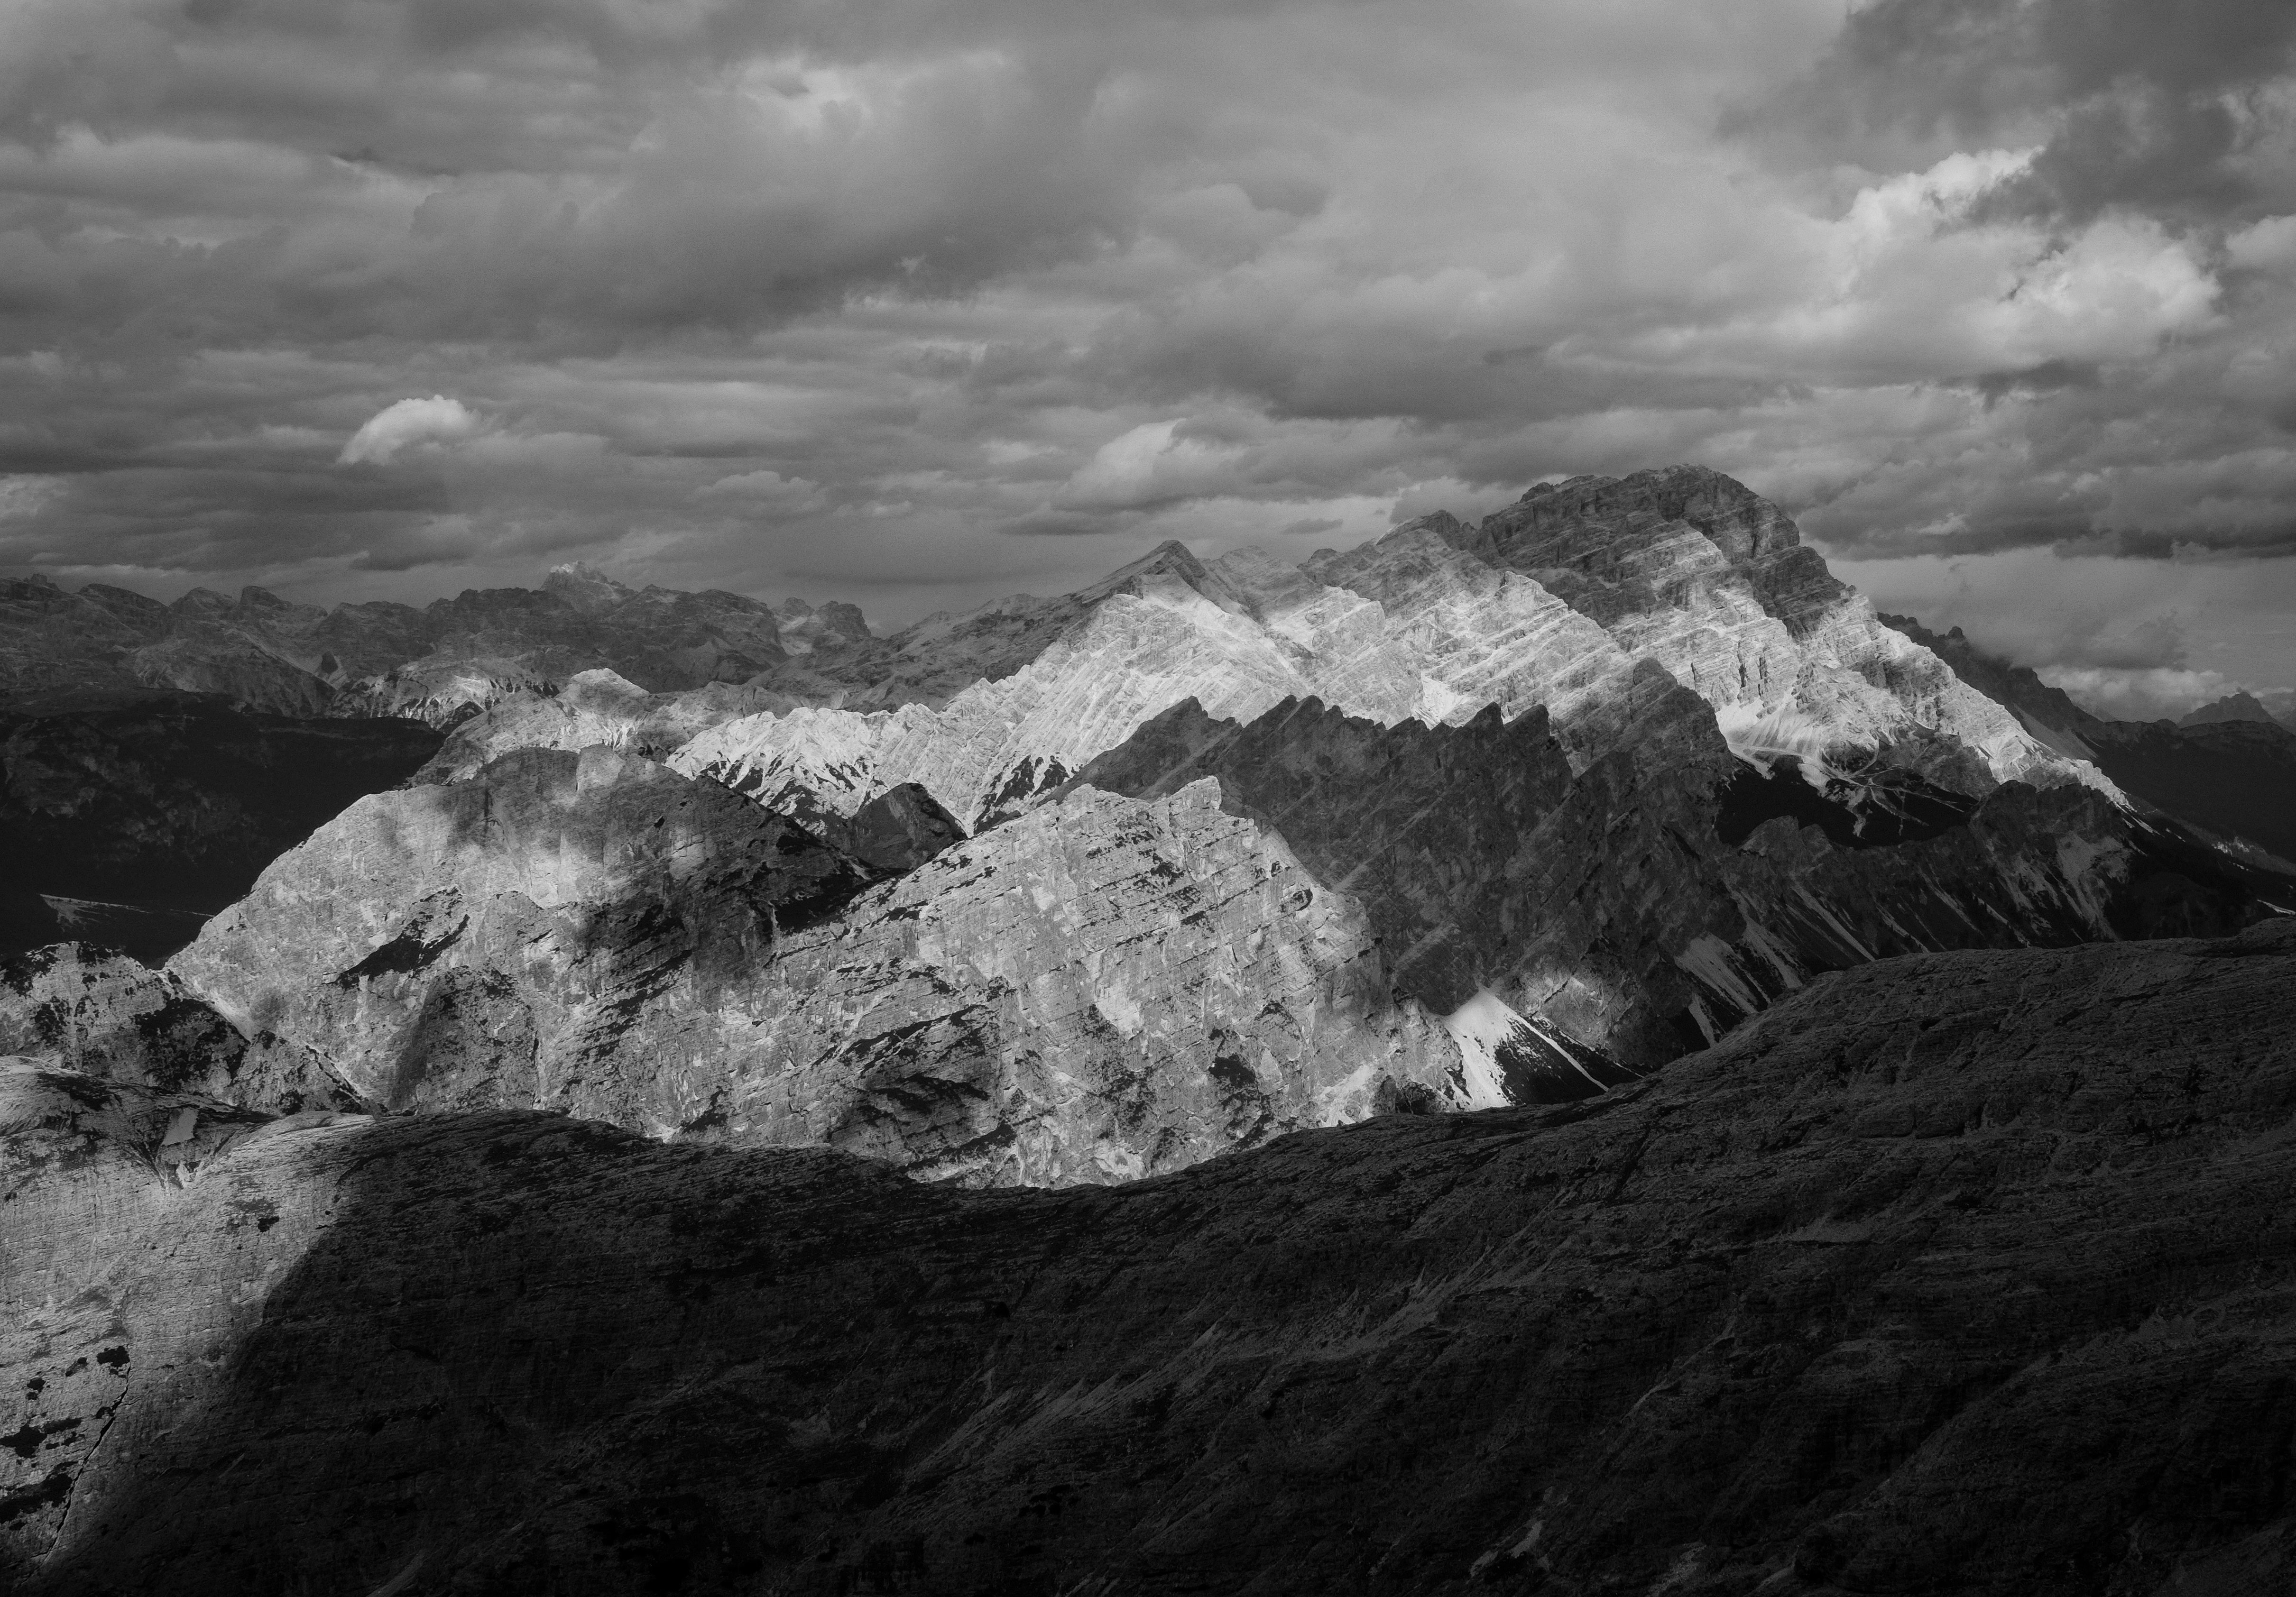 grayscale photo of terrain under cloudy sky